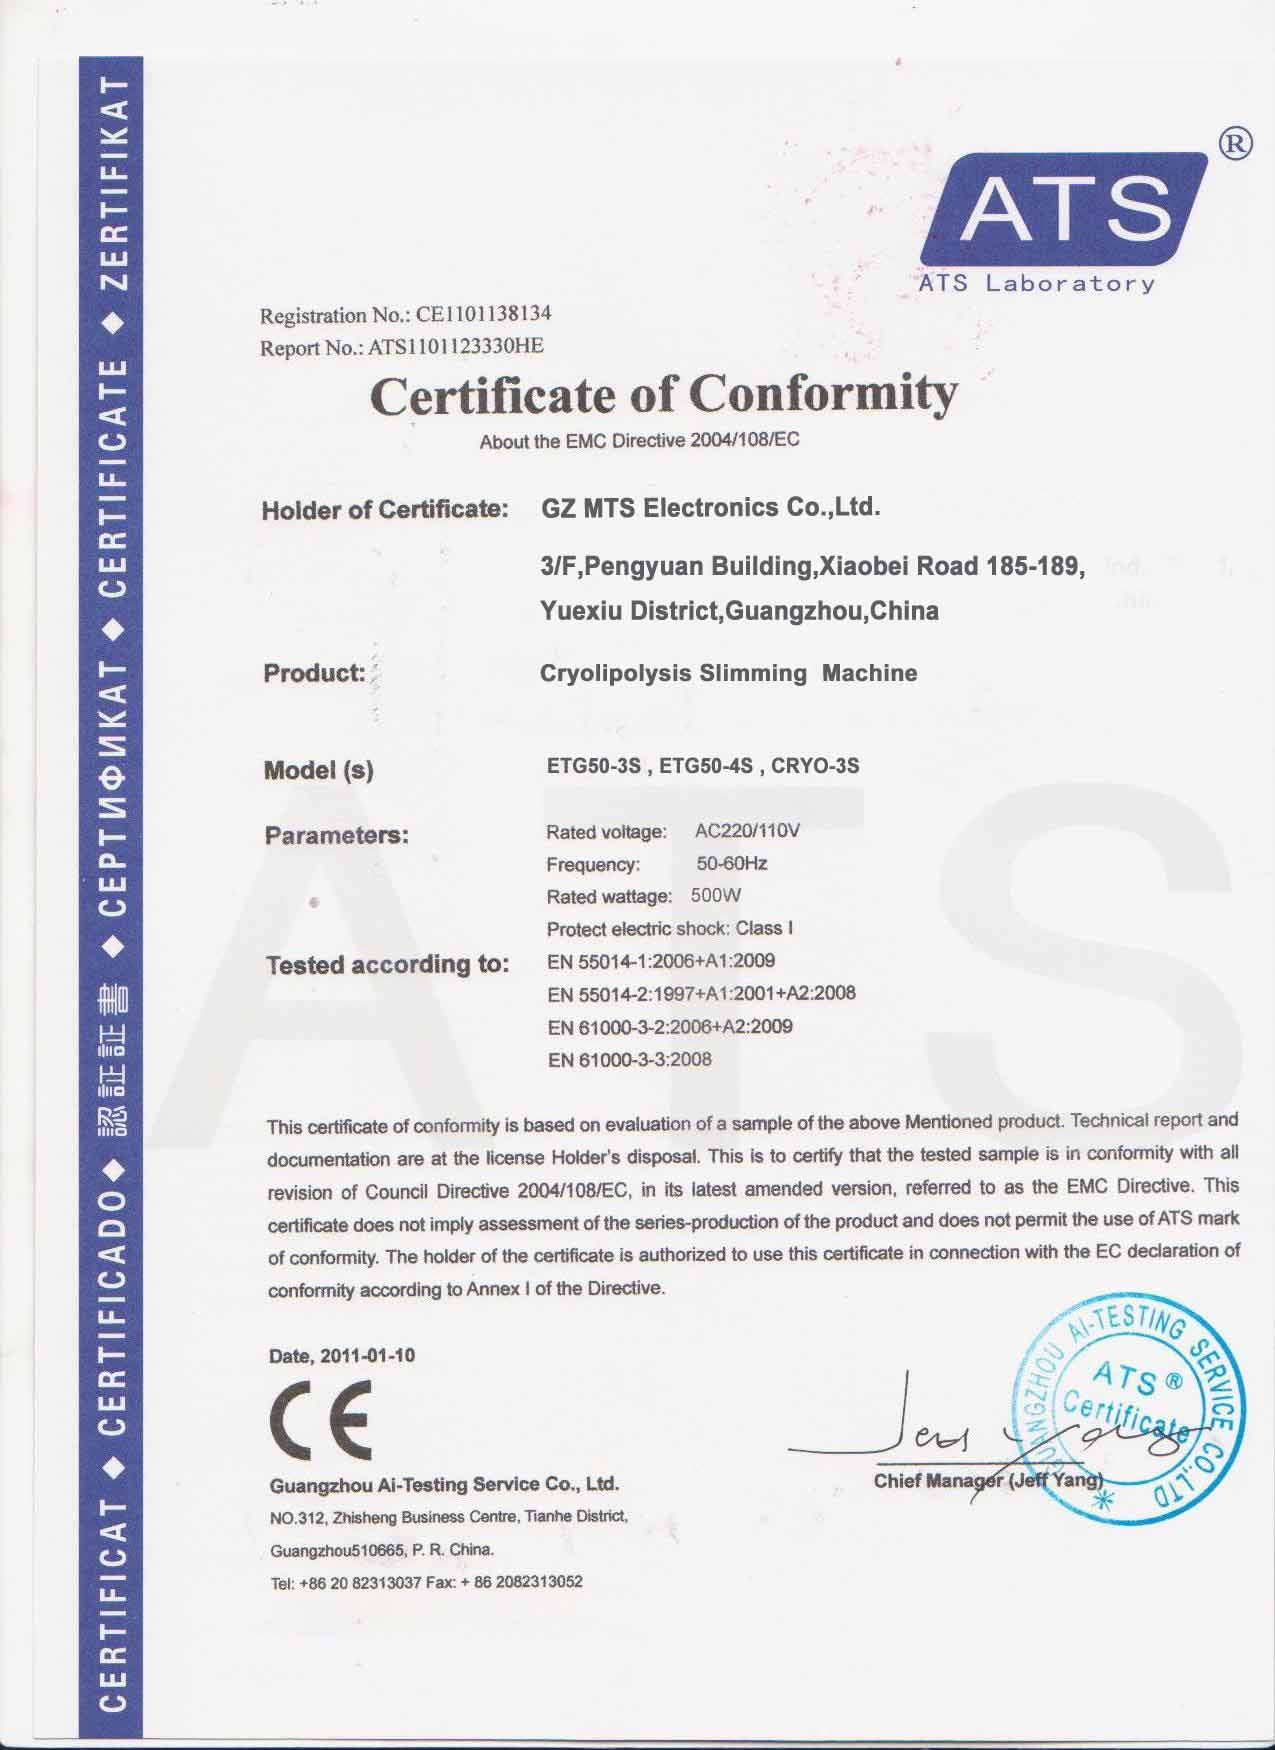 Honorable discharge certificate template the party ticket testing certificates certificate templates recommendation letter htb101kqkxxxxxaexxxxq6xxfxxxp testing certificates certificate templateshtml xflitez Image collections